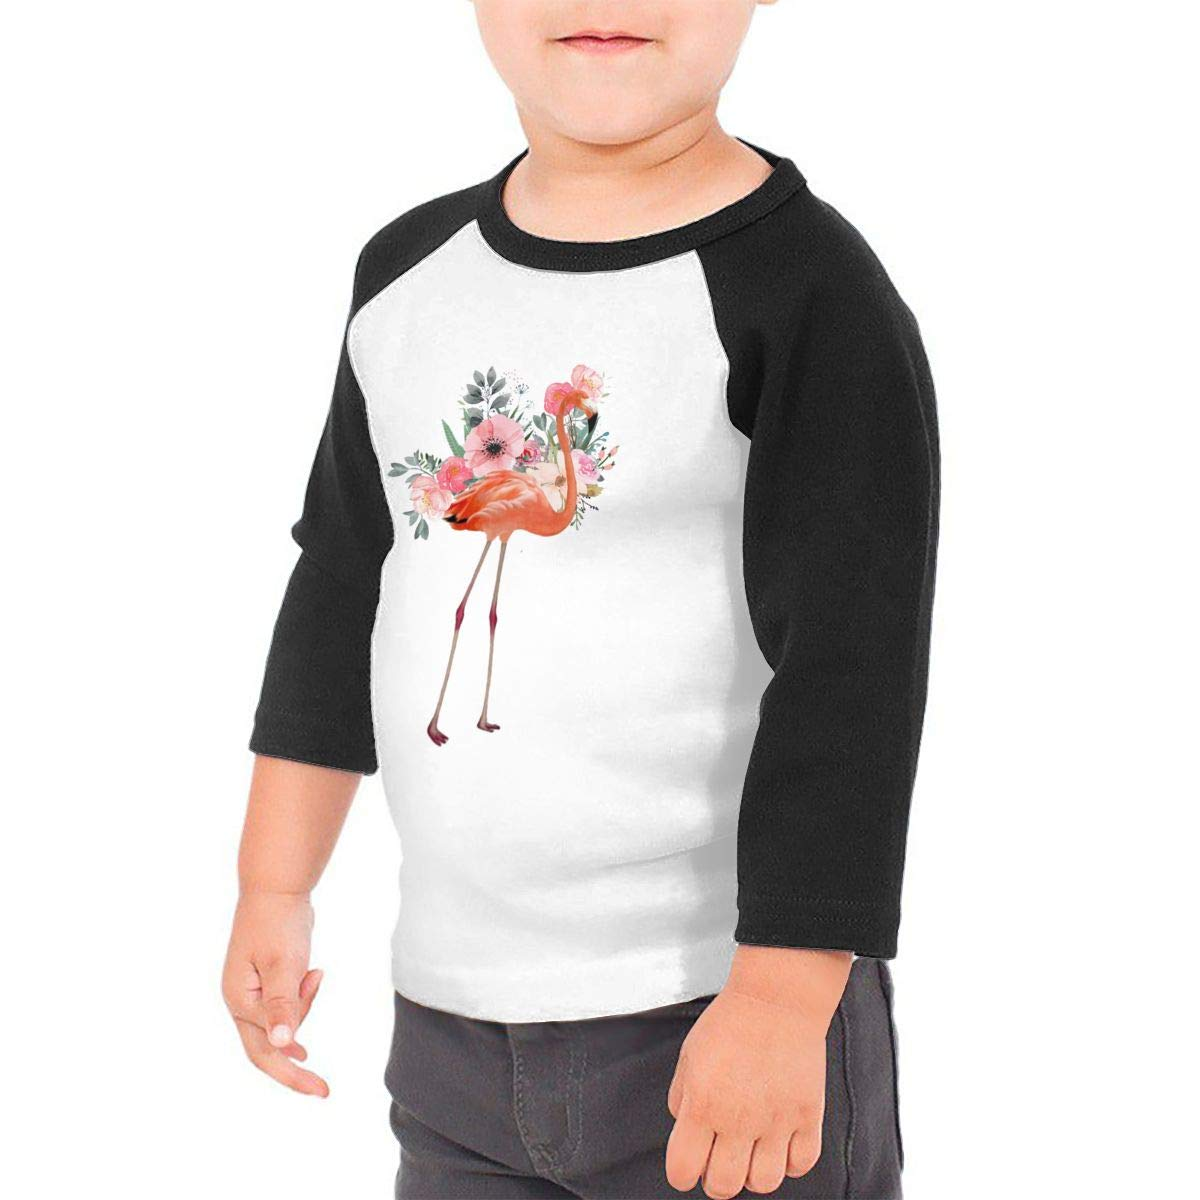 Floral Flamingo Unisex Toddler Baseball Jersey Contrast 3//4 Sleeves Tee